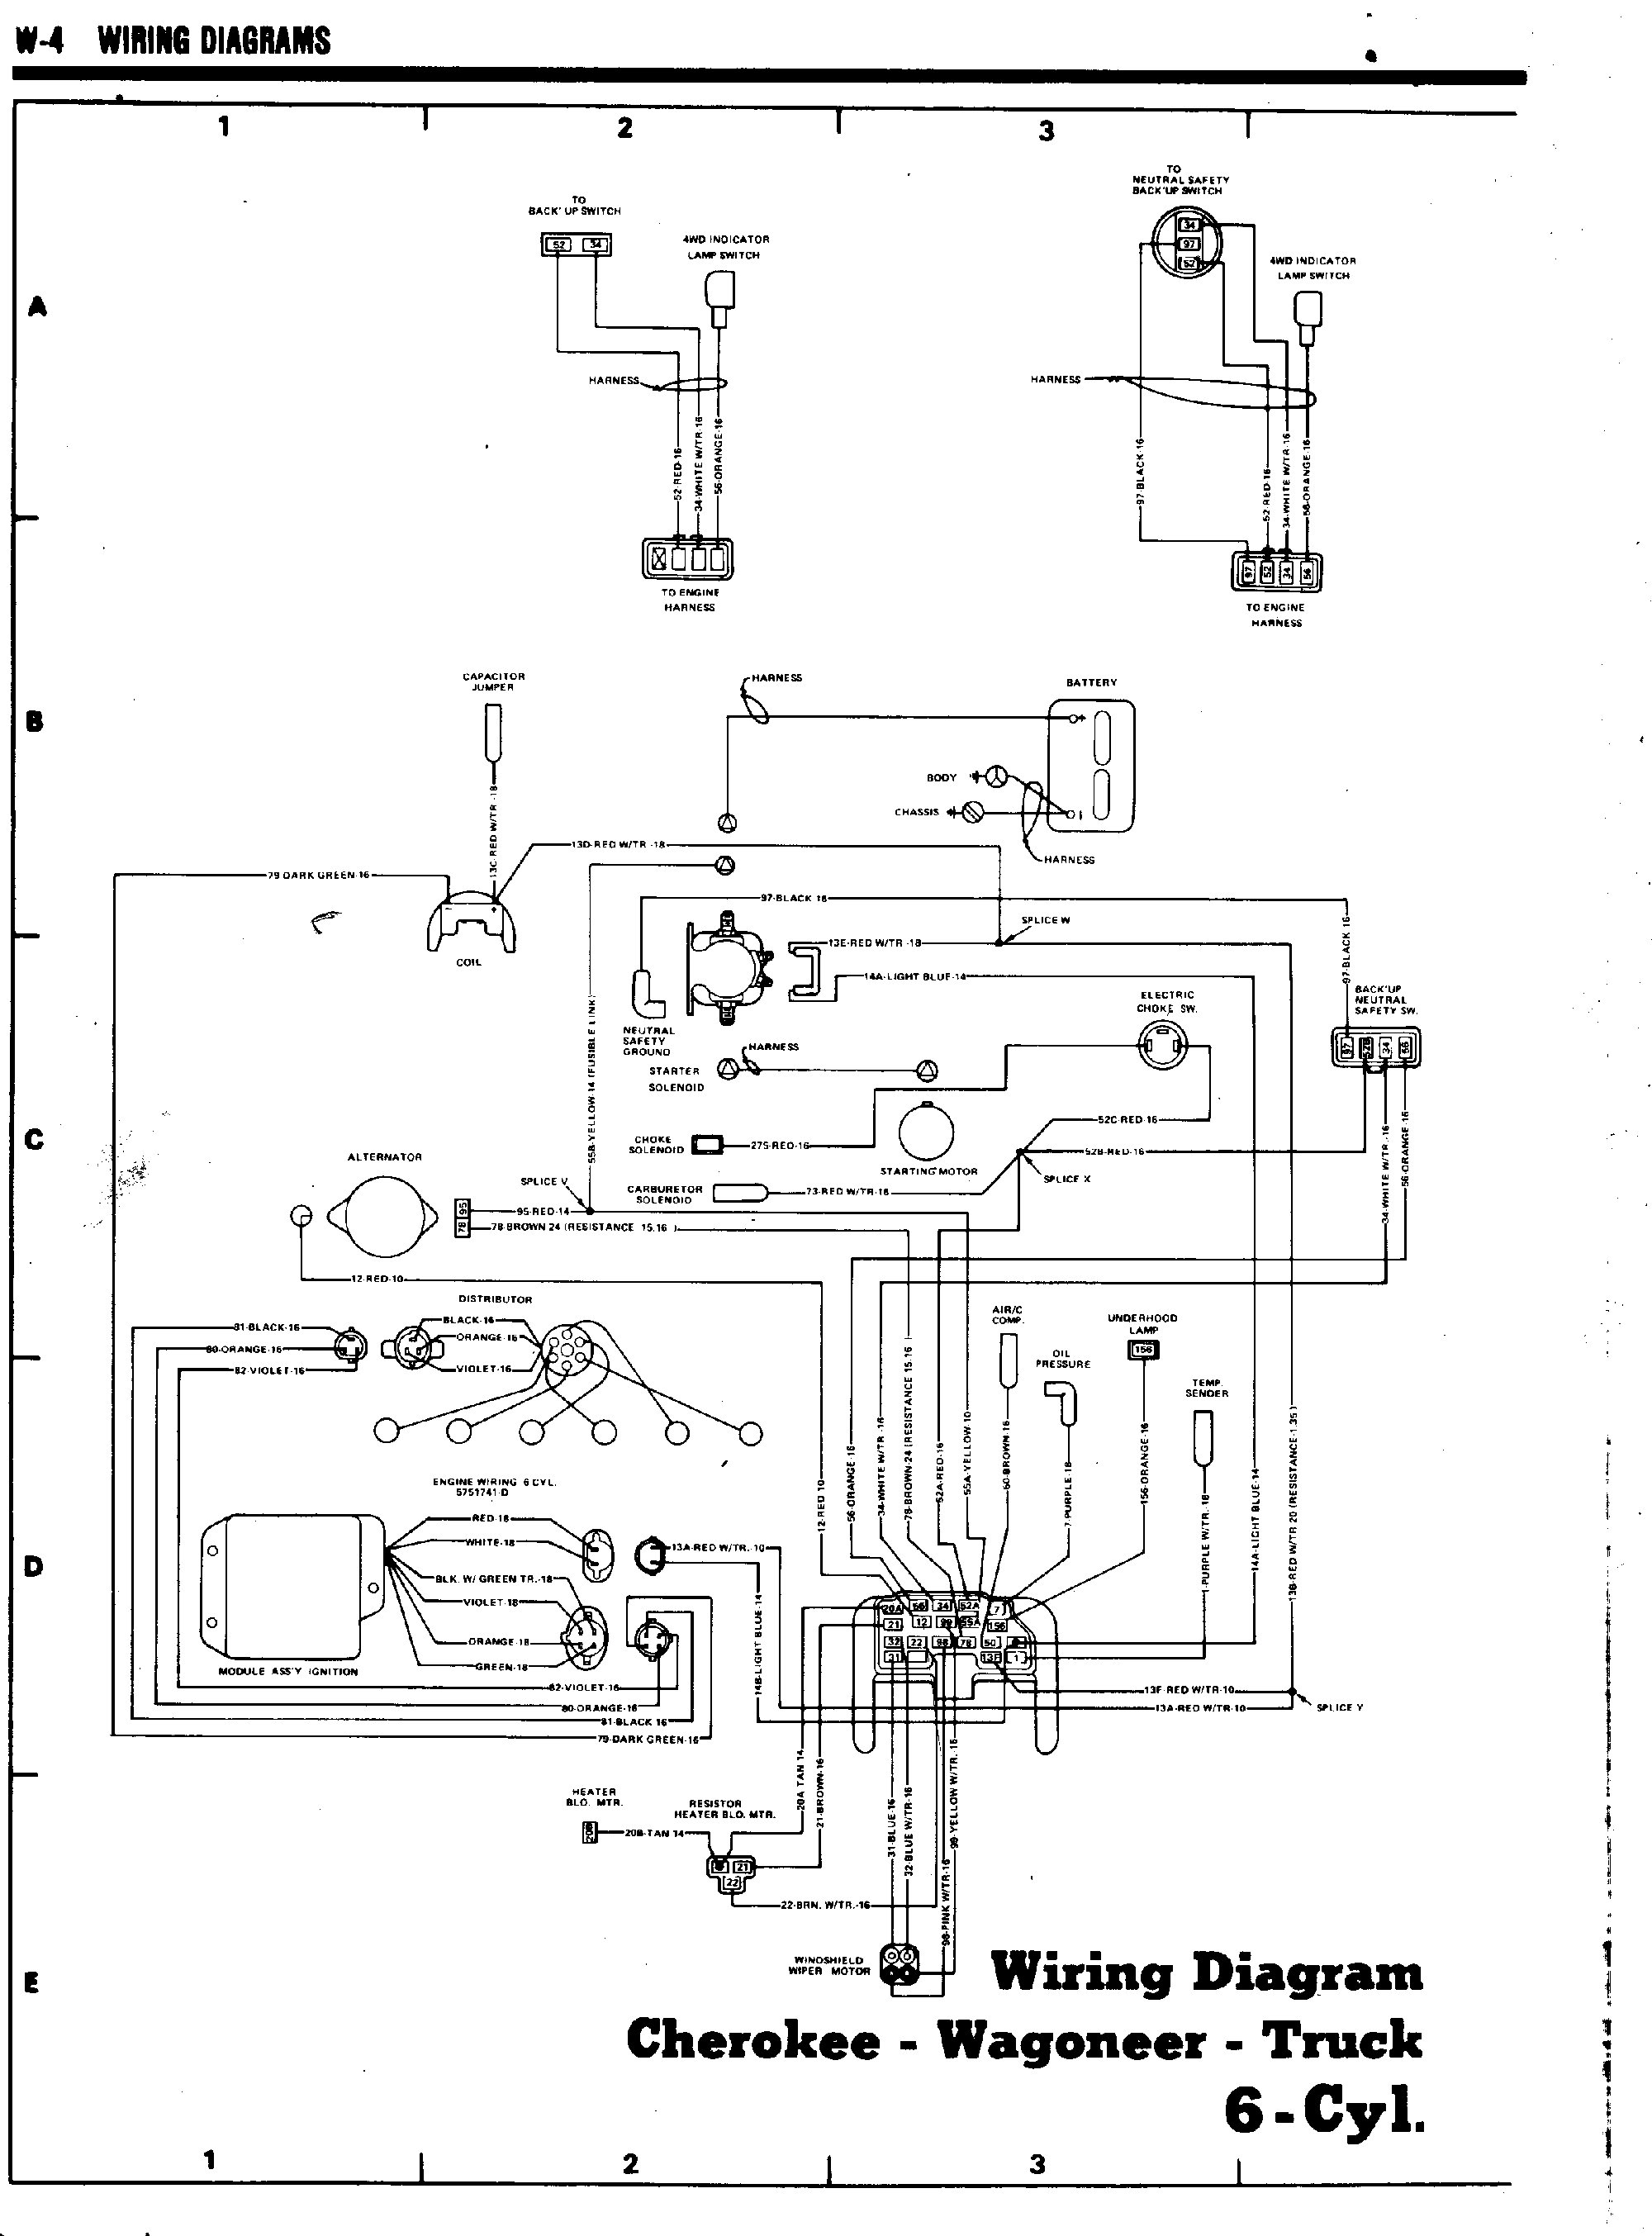 1979 jeep j10 wiring diagram